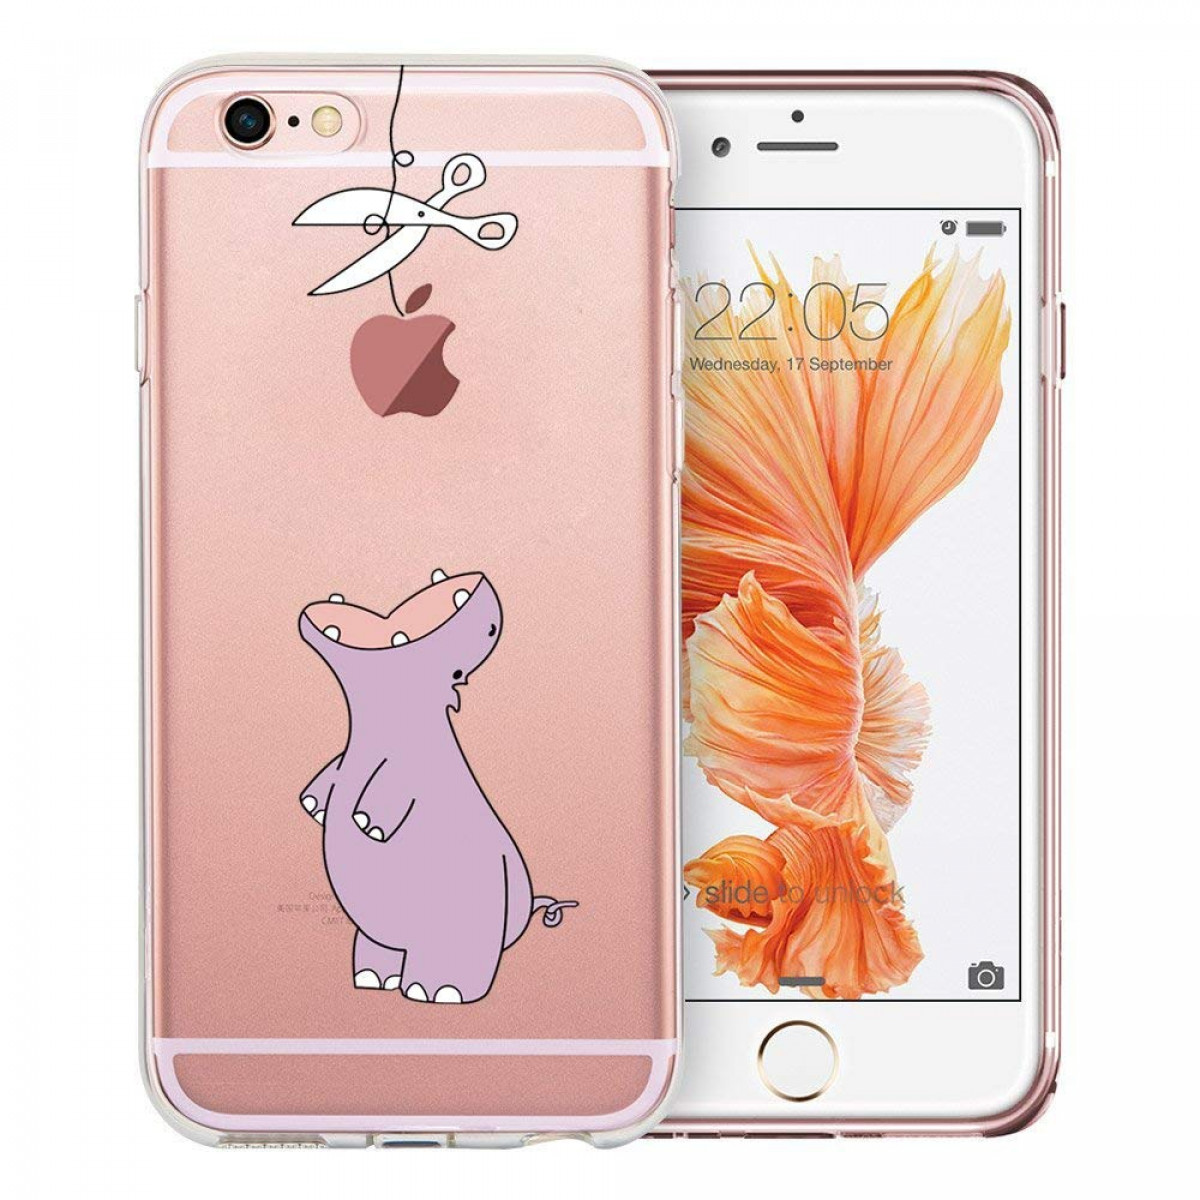 huge selection of 4f840 bcaf8 iPhone 6 Case, iPhone 6S Case, Doramifer Funny Series Protective Case  [Anti-Slip] [Good Grip] with Aesthetic 3D Print Soft Back Cover for iPhone  6/6S ...